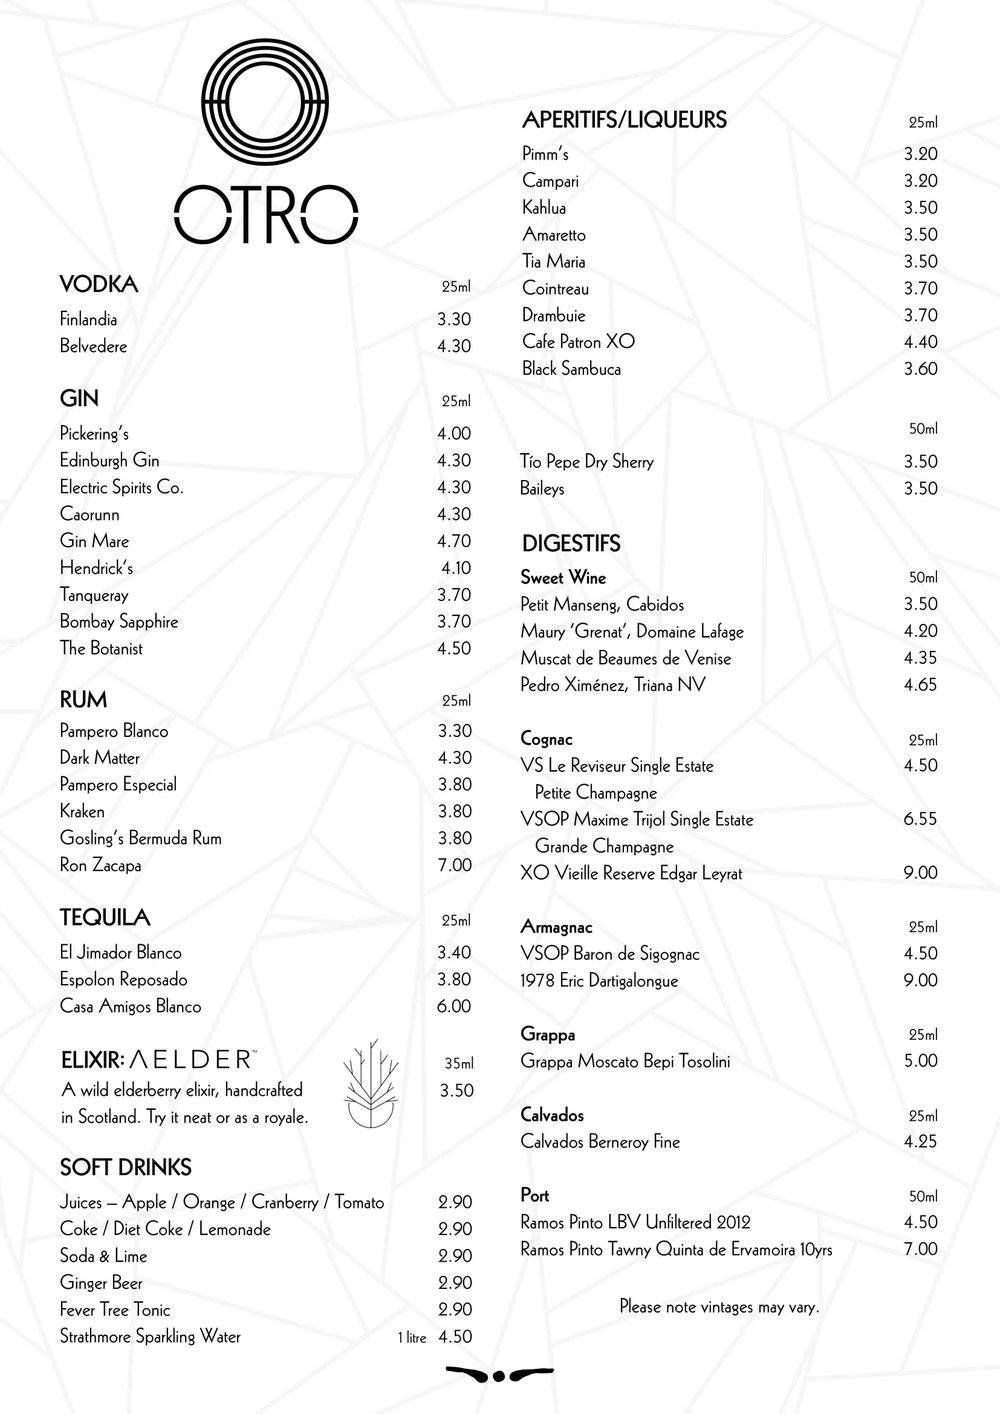 otro drinks list 3.jpg